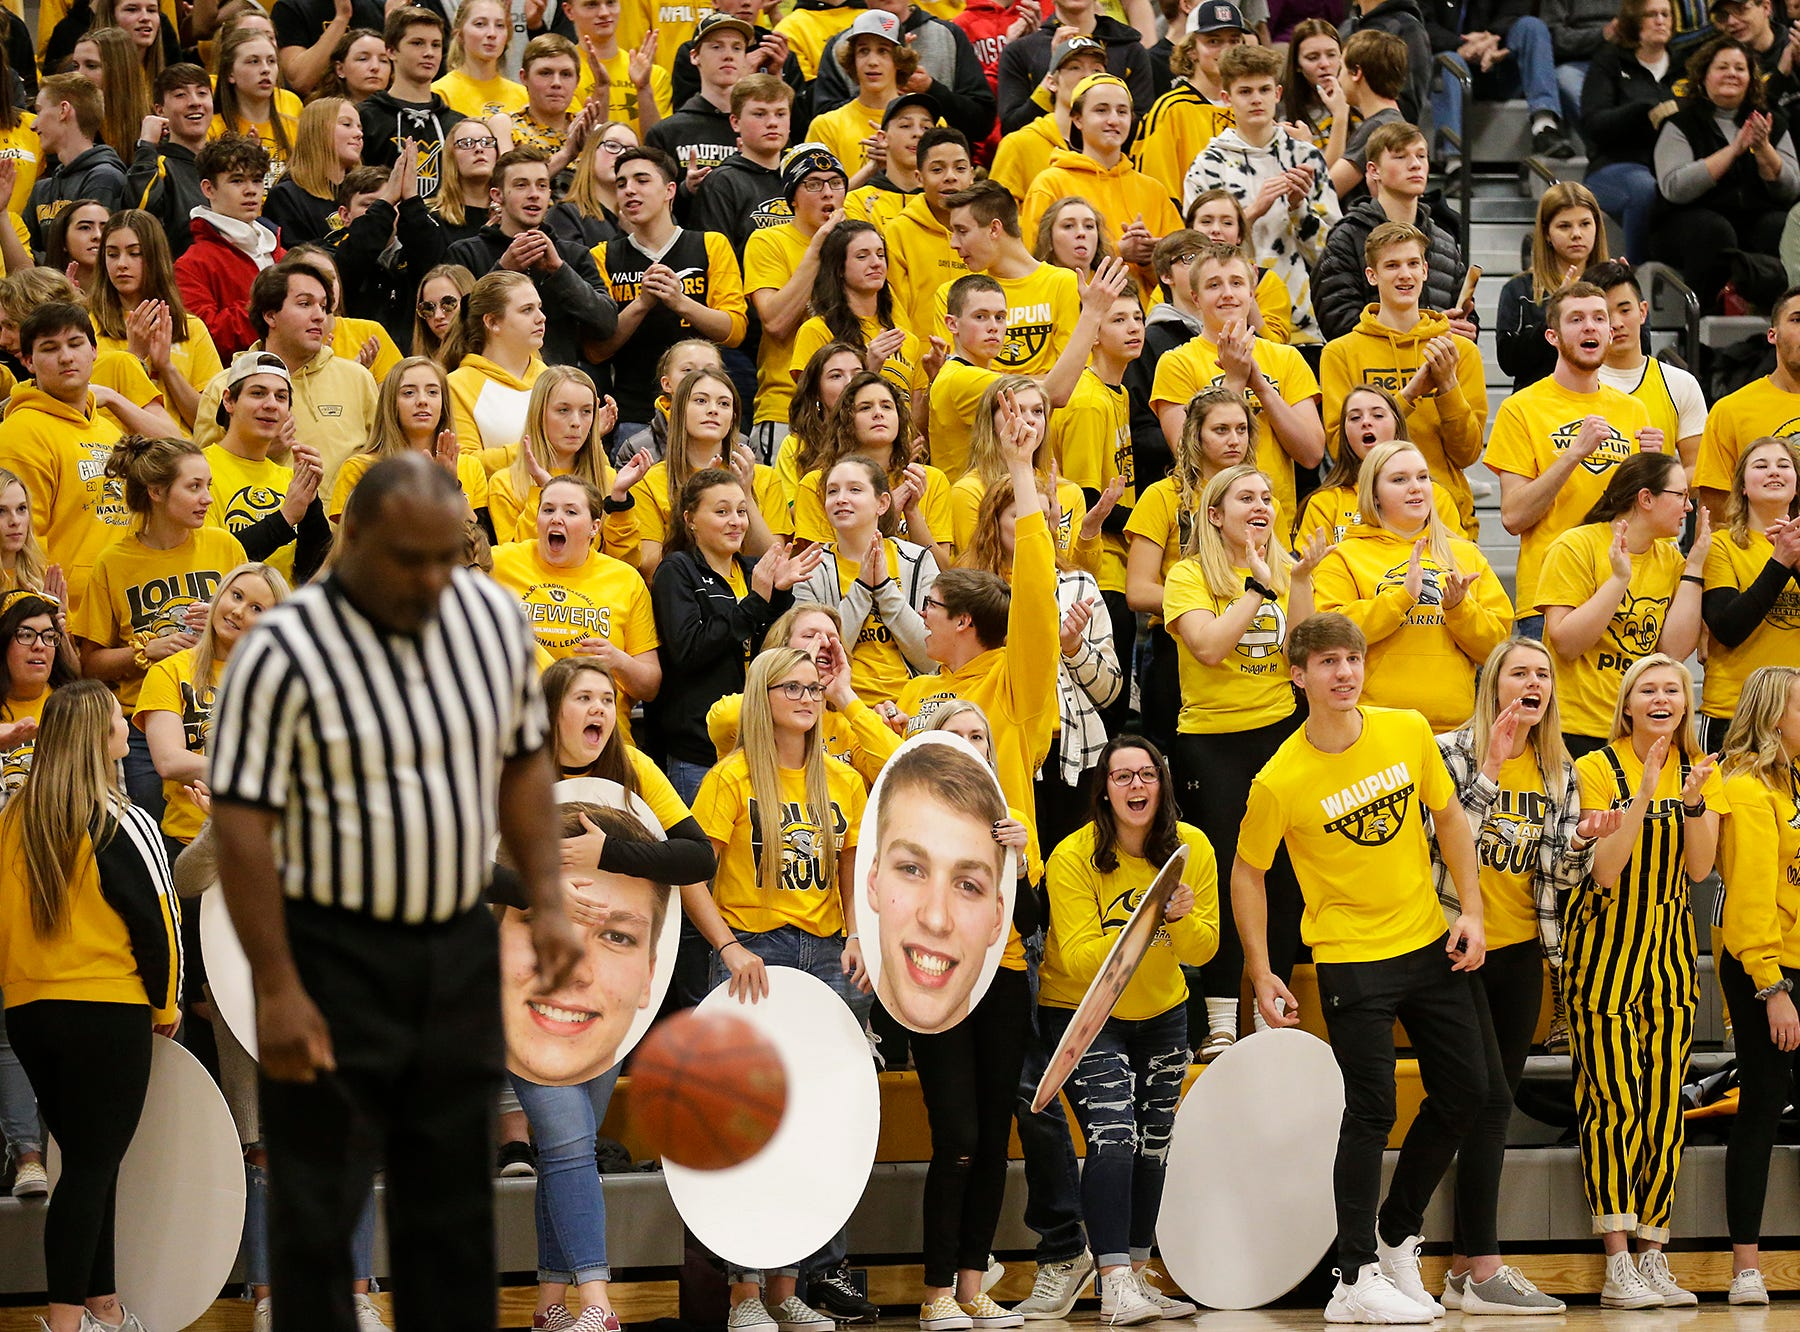 Waupun High School boys basketball's fans celebrate a basket against Columbus High School during their WIAA division 3 sectional semi-final game Thursday, March 7, 2019 in Beaver Dam, Wis. Waupun won the game 79-36. Doug Raflik/USA TODAY NETWORK-Wisconsin